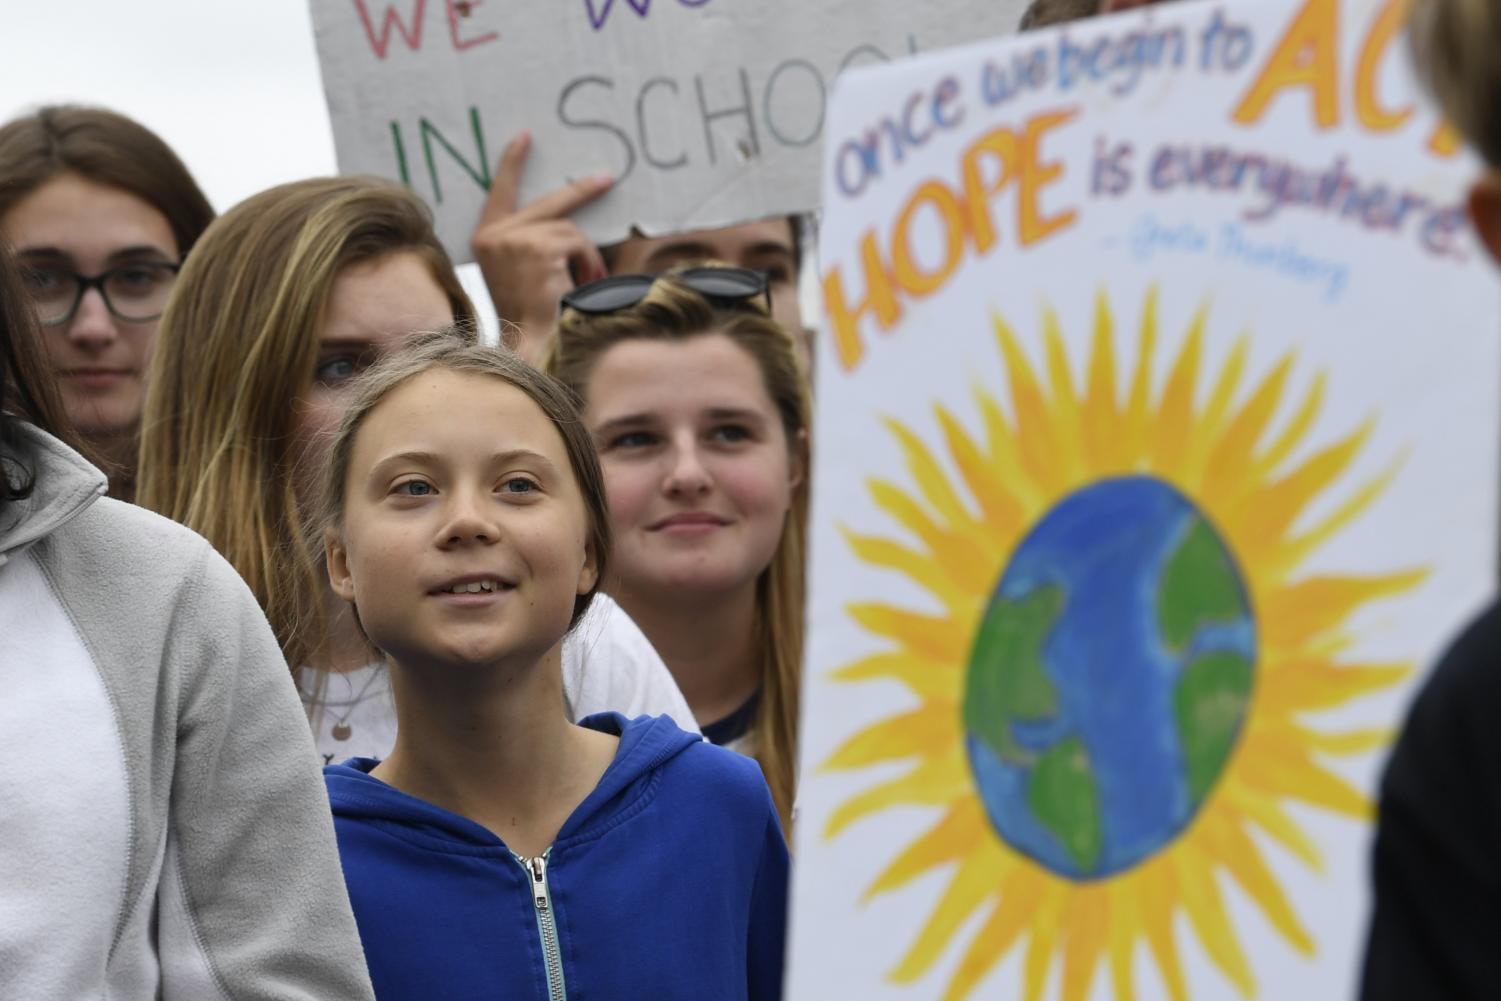 16-year-old climate activist Greta Thunberg attends a climate change protest.